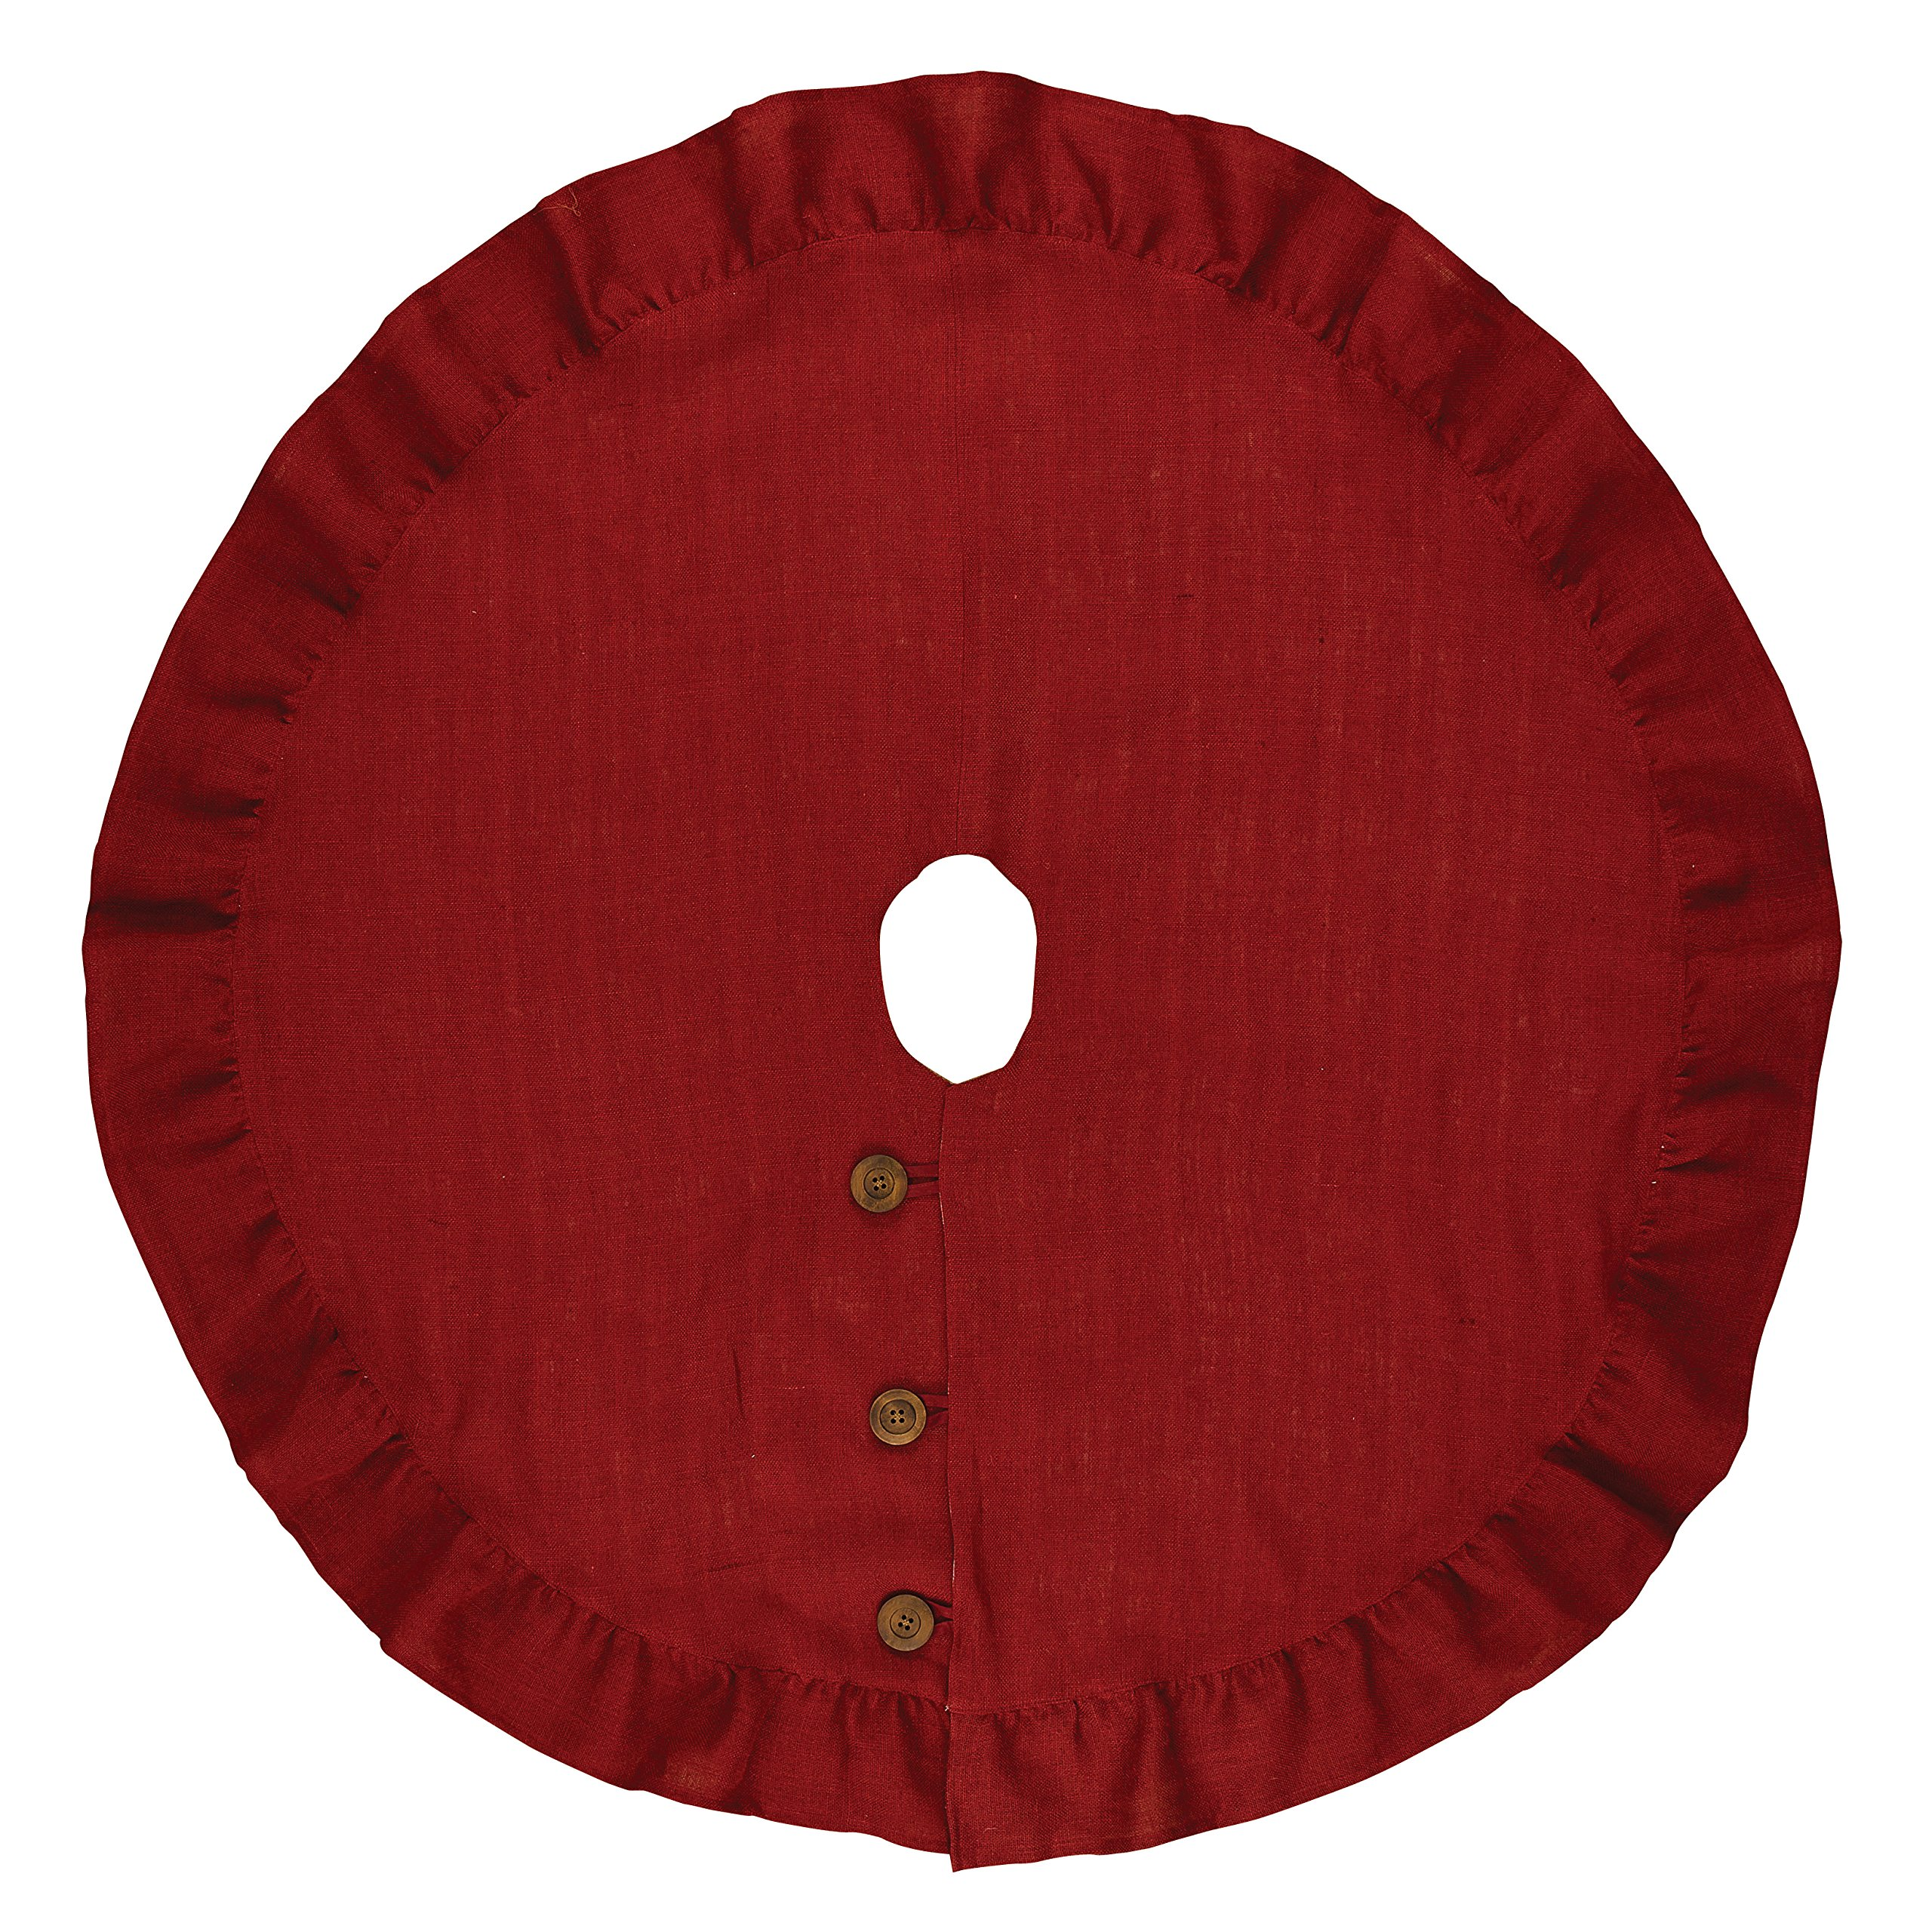 Park Designs 850-56M Holiday Collection Jute Burlap Tree Skirt, 60'', Red by Park Designs